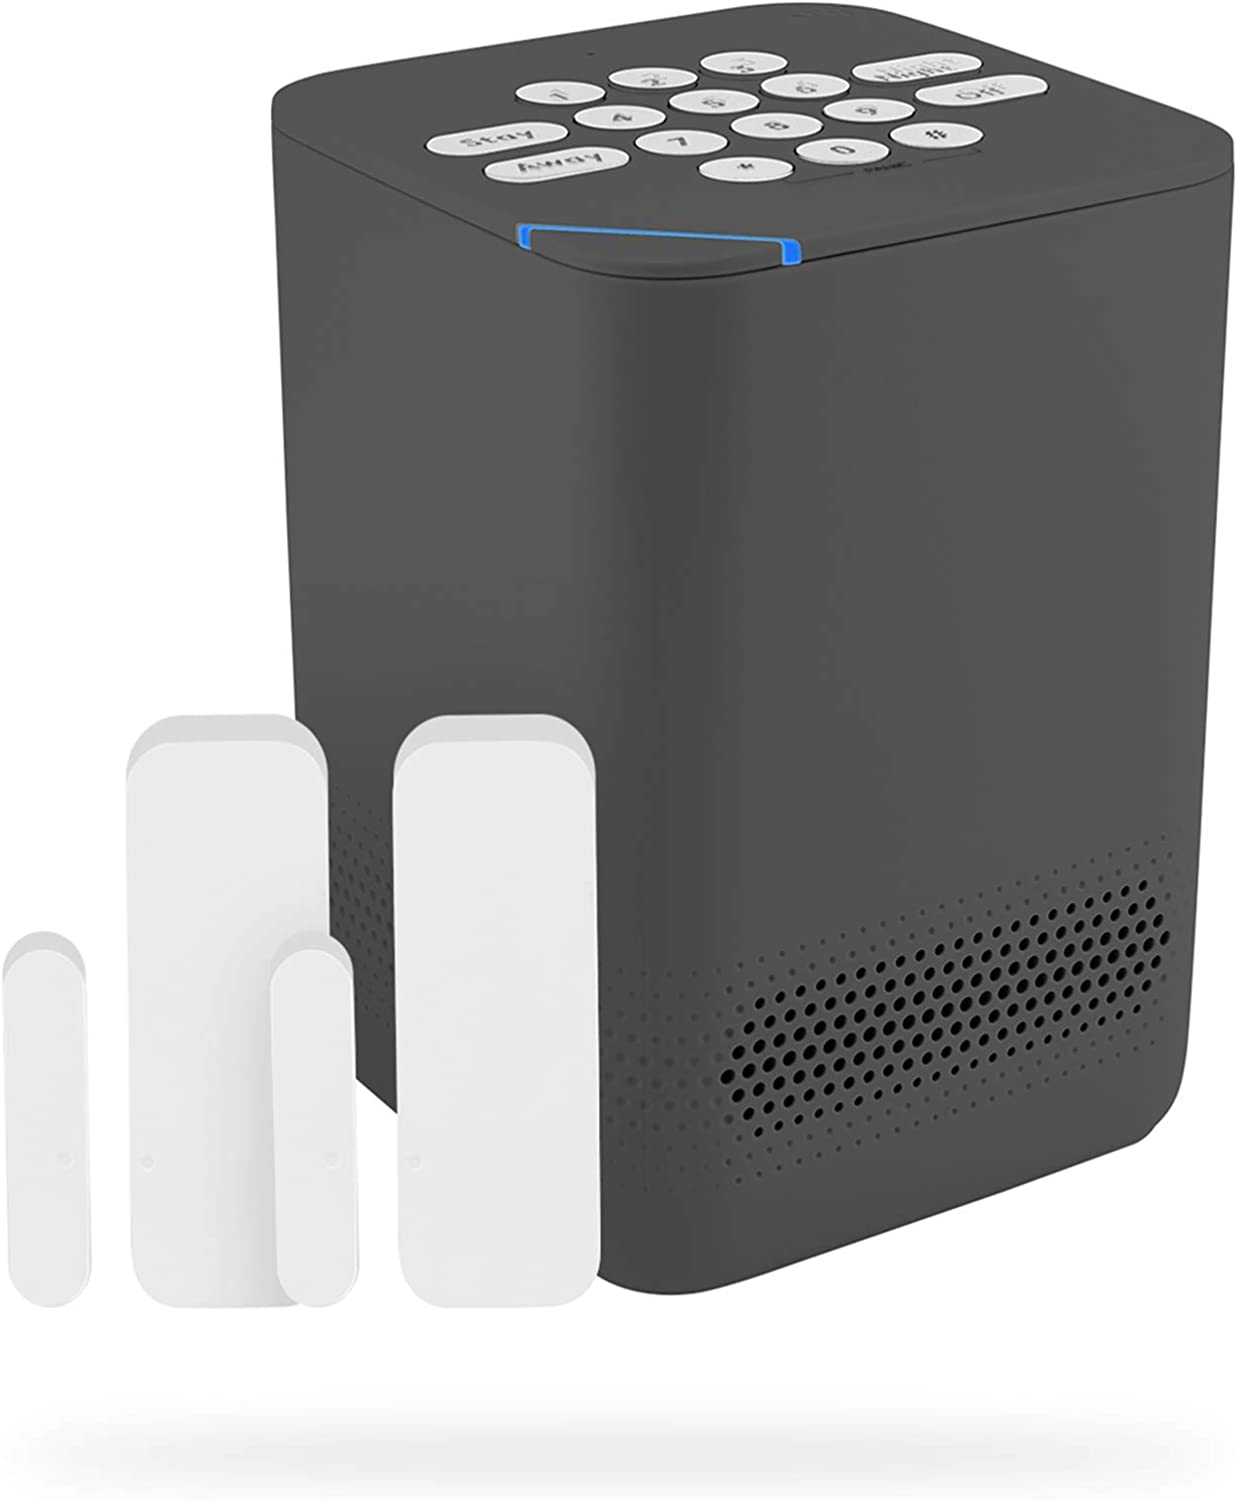 Blue by ADT Starter System – Easy, DIY Setup – Optional 24/7 Professional Monitoring – No Contracts – Alexa Compatible - Graphite